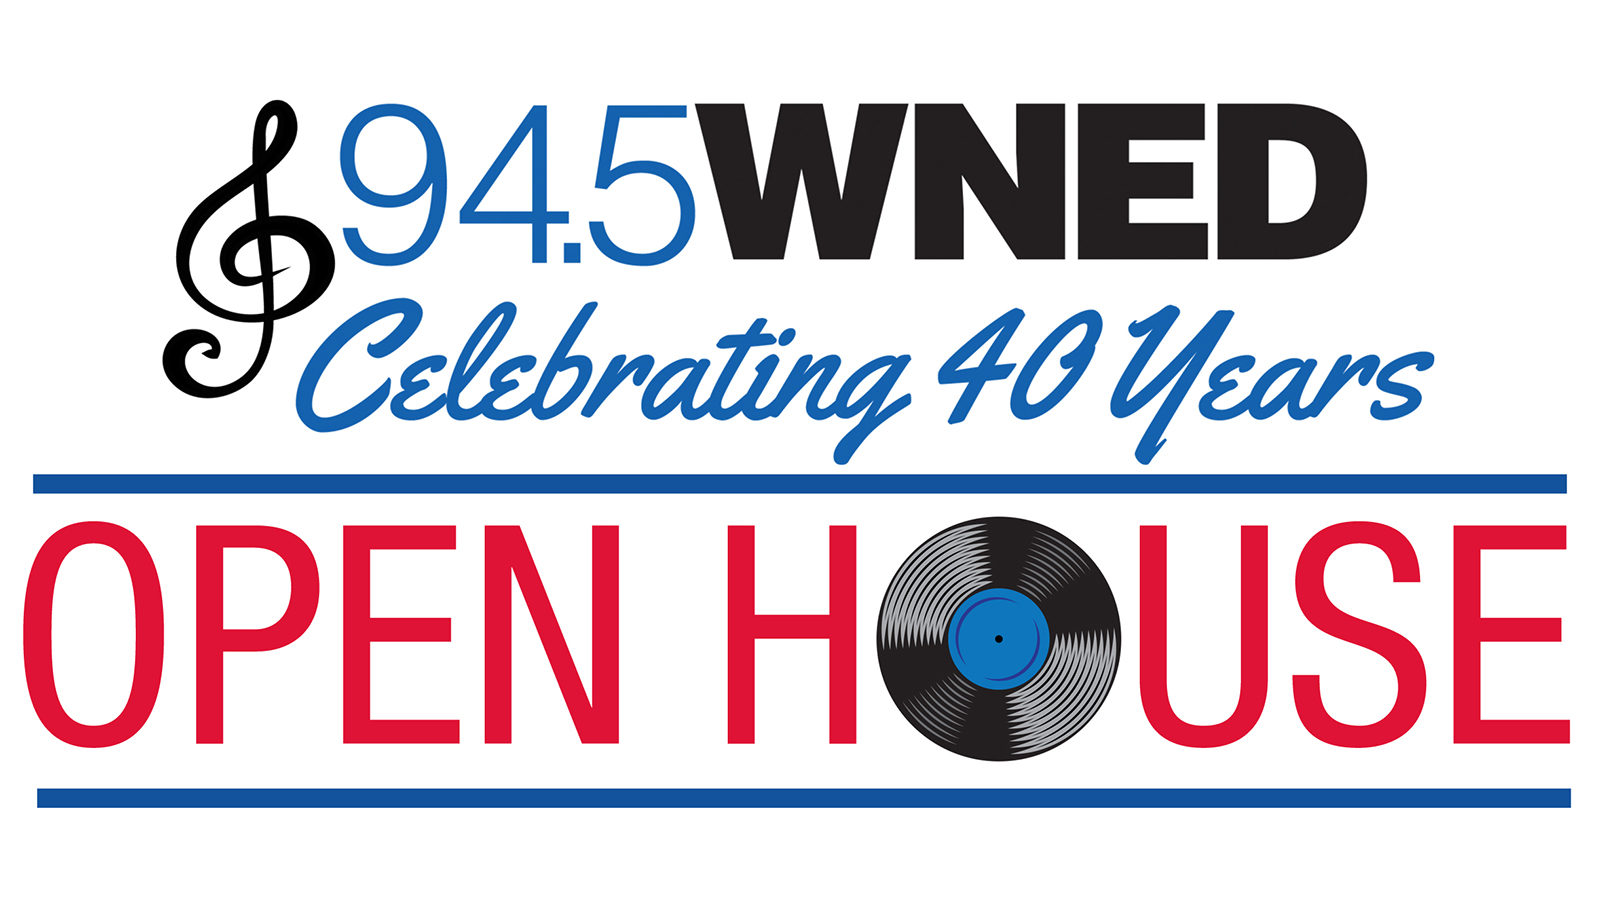 <b>Classical 94.5 WNED Open House!</b>